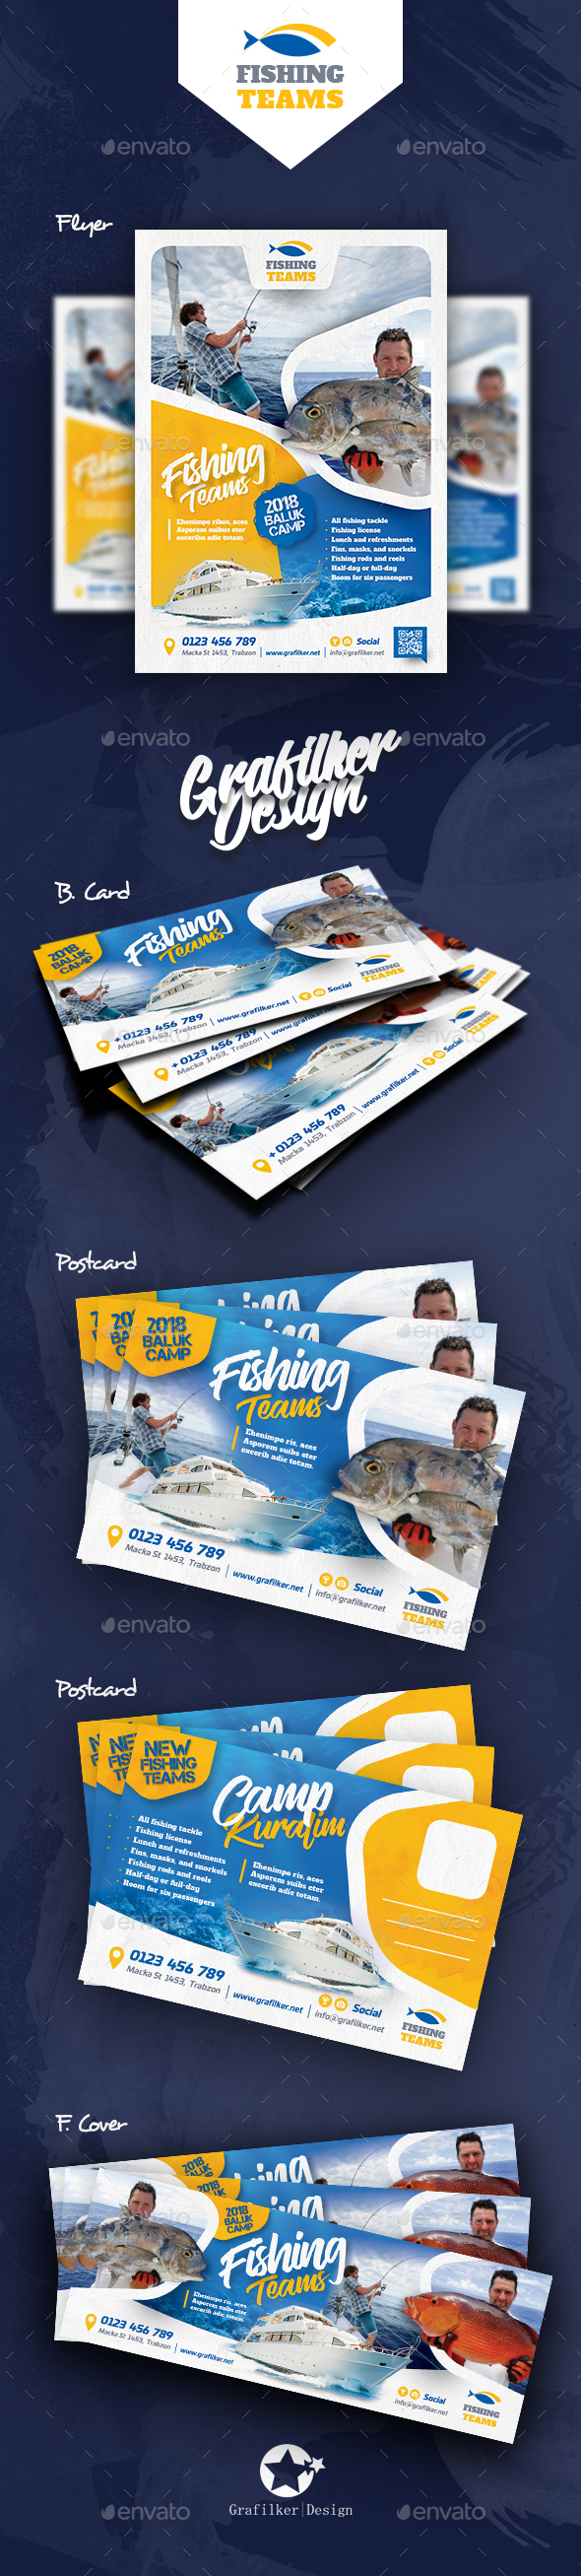 Fishing Bundle Templates - Corporate Flyers